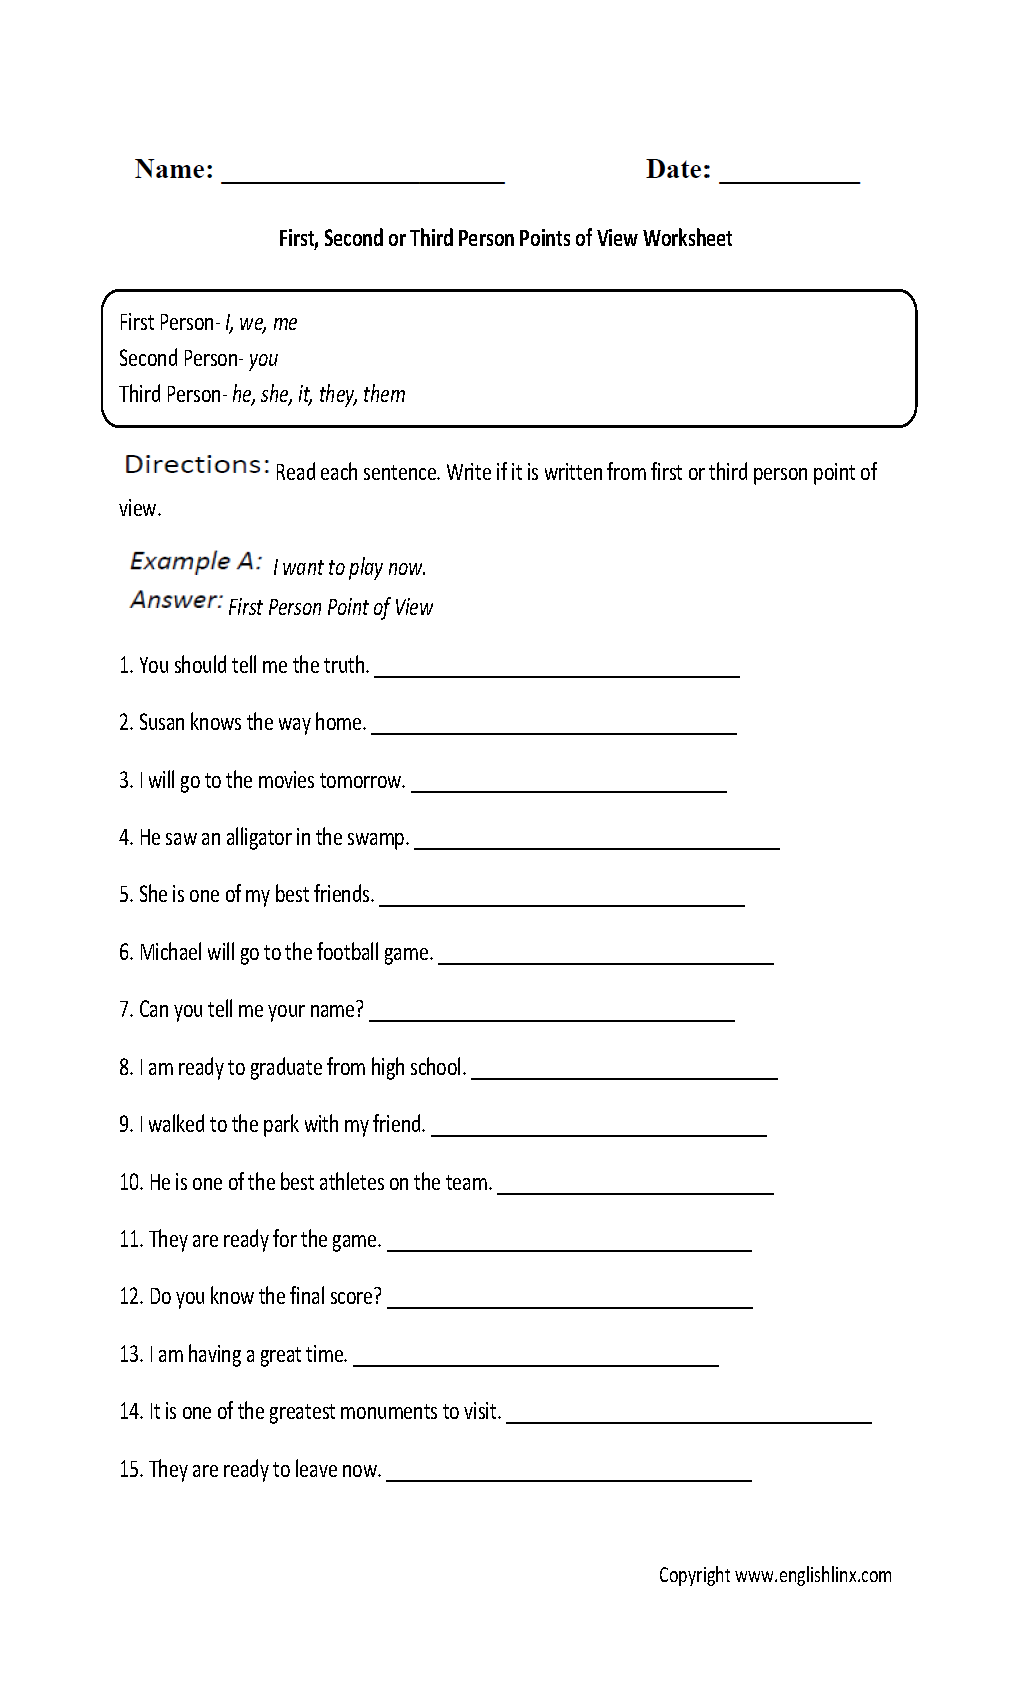 Workbooks plot and theme worksheets : First, Second and Third Person Point of View Worksheet ...